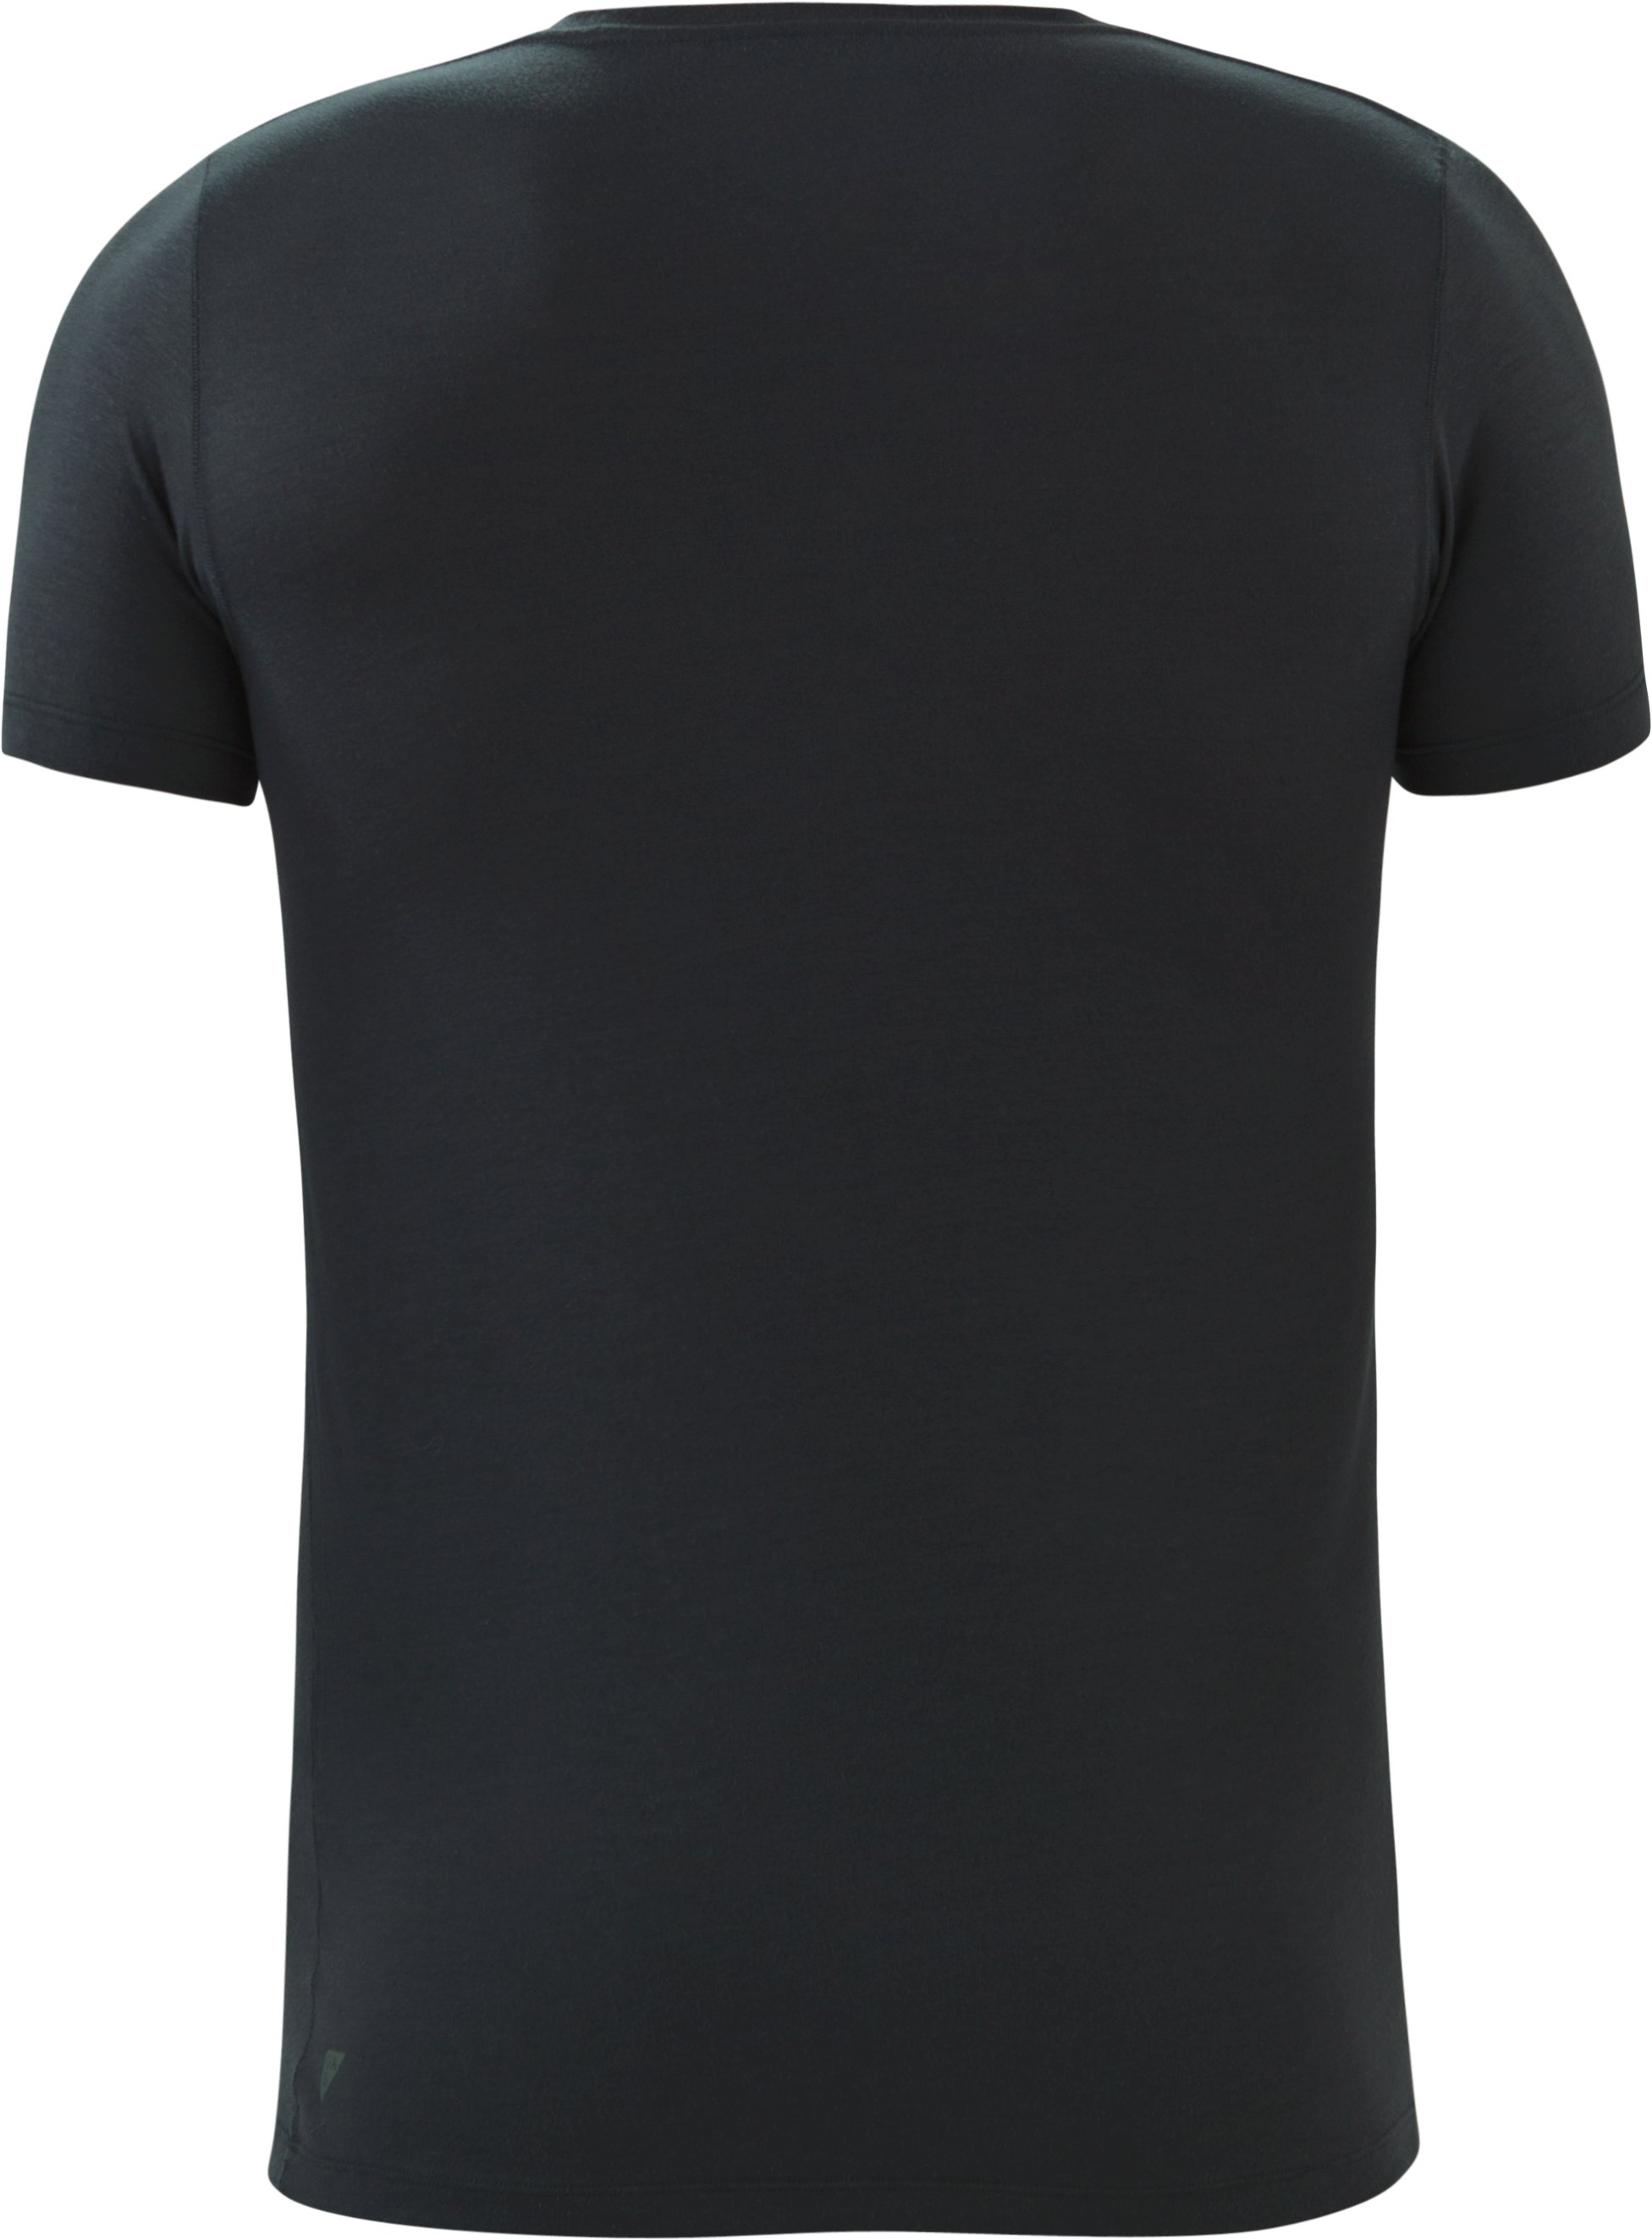 Men's UAS Prime Crew, Black